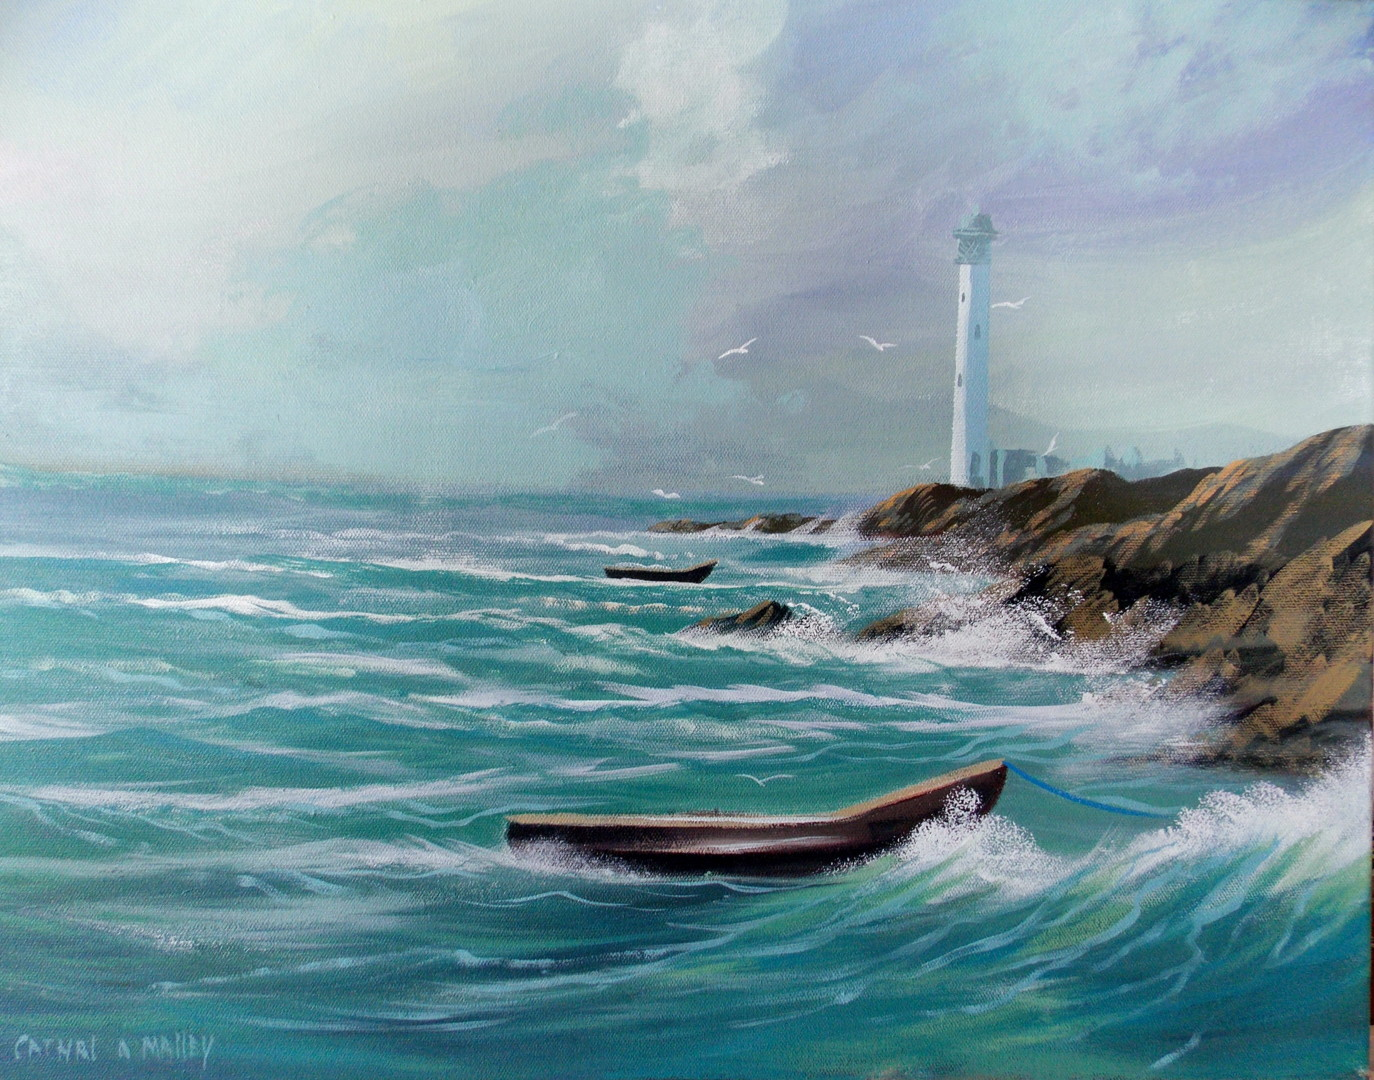 Cathal O Malley - waiting out the storm